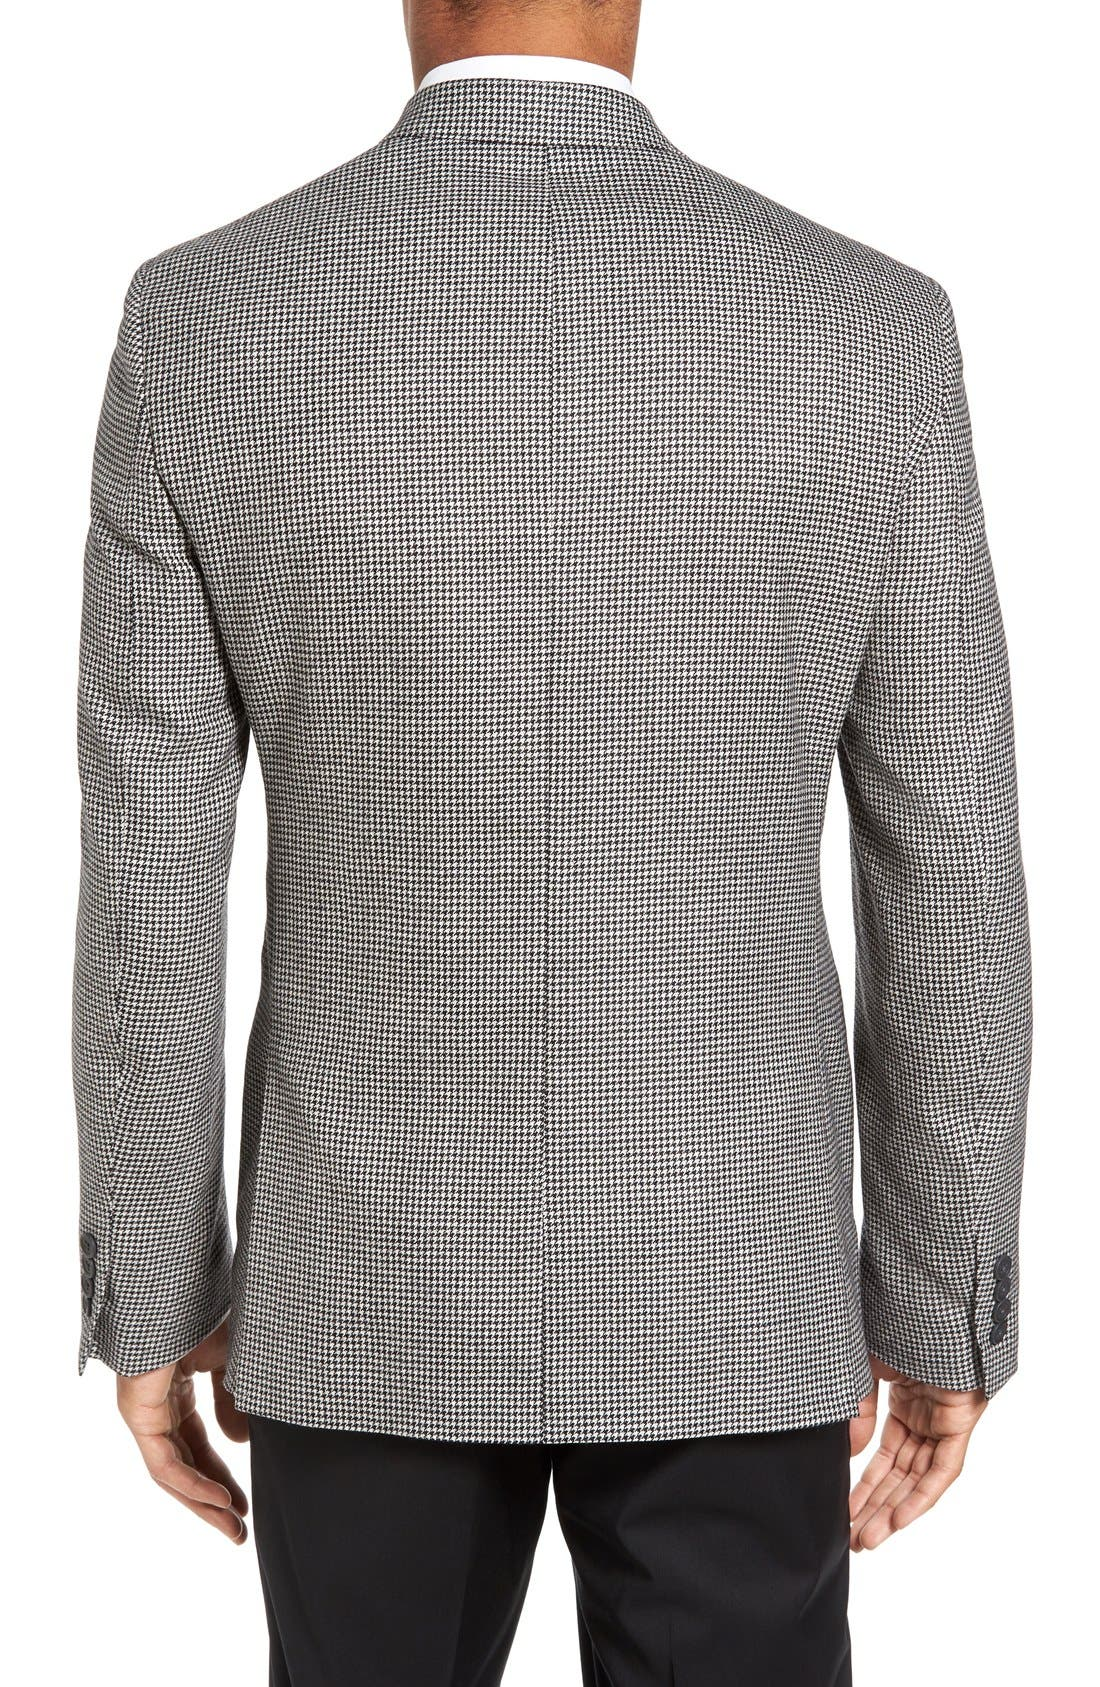 Alternate Image 2  - Nordstrom Men's Shop Classic Fit Houndstooth Wool & Cashmere Sport Coat